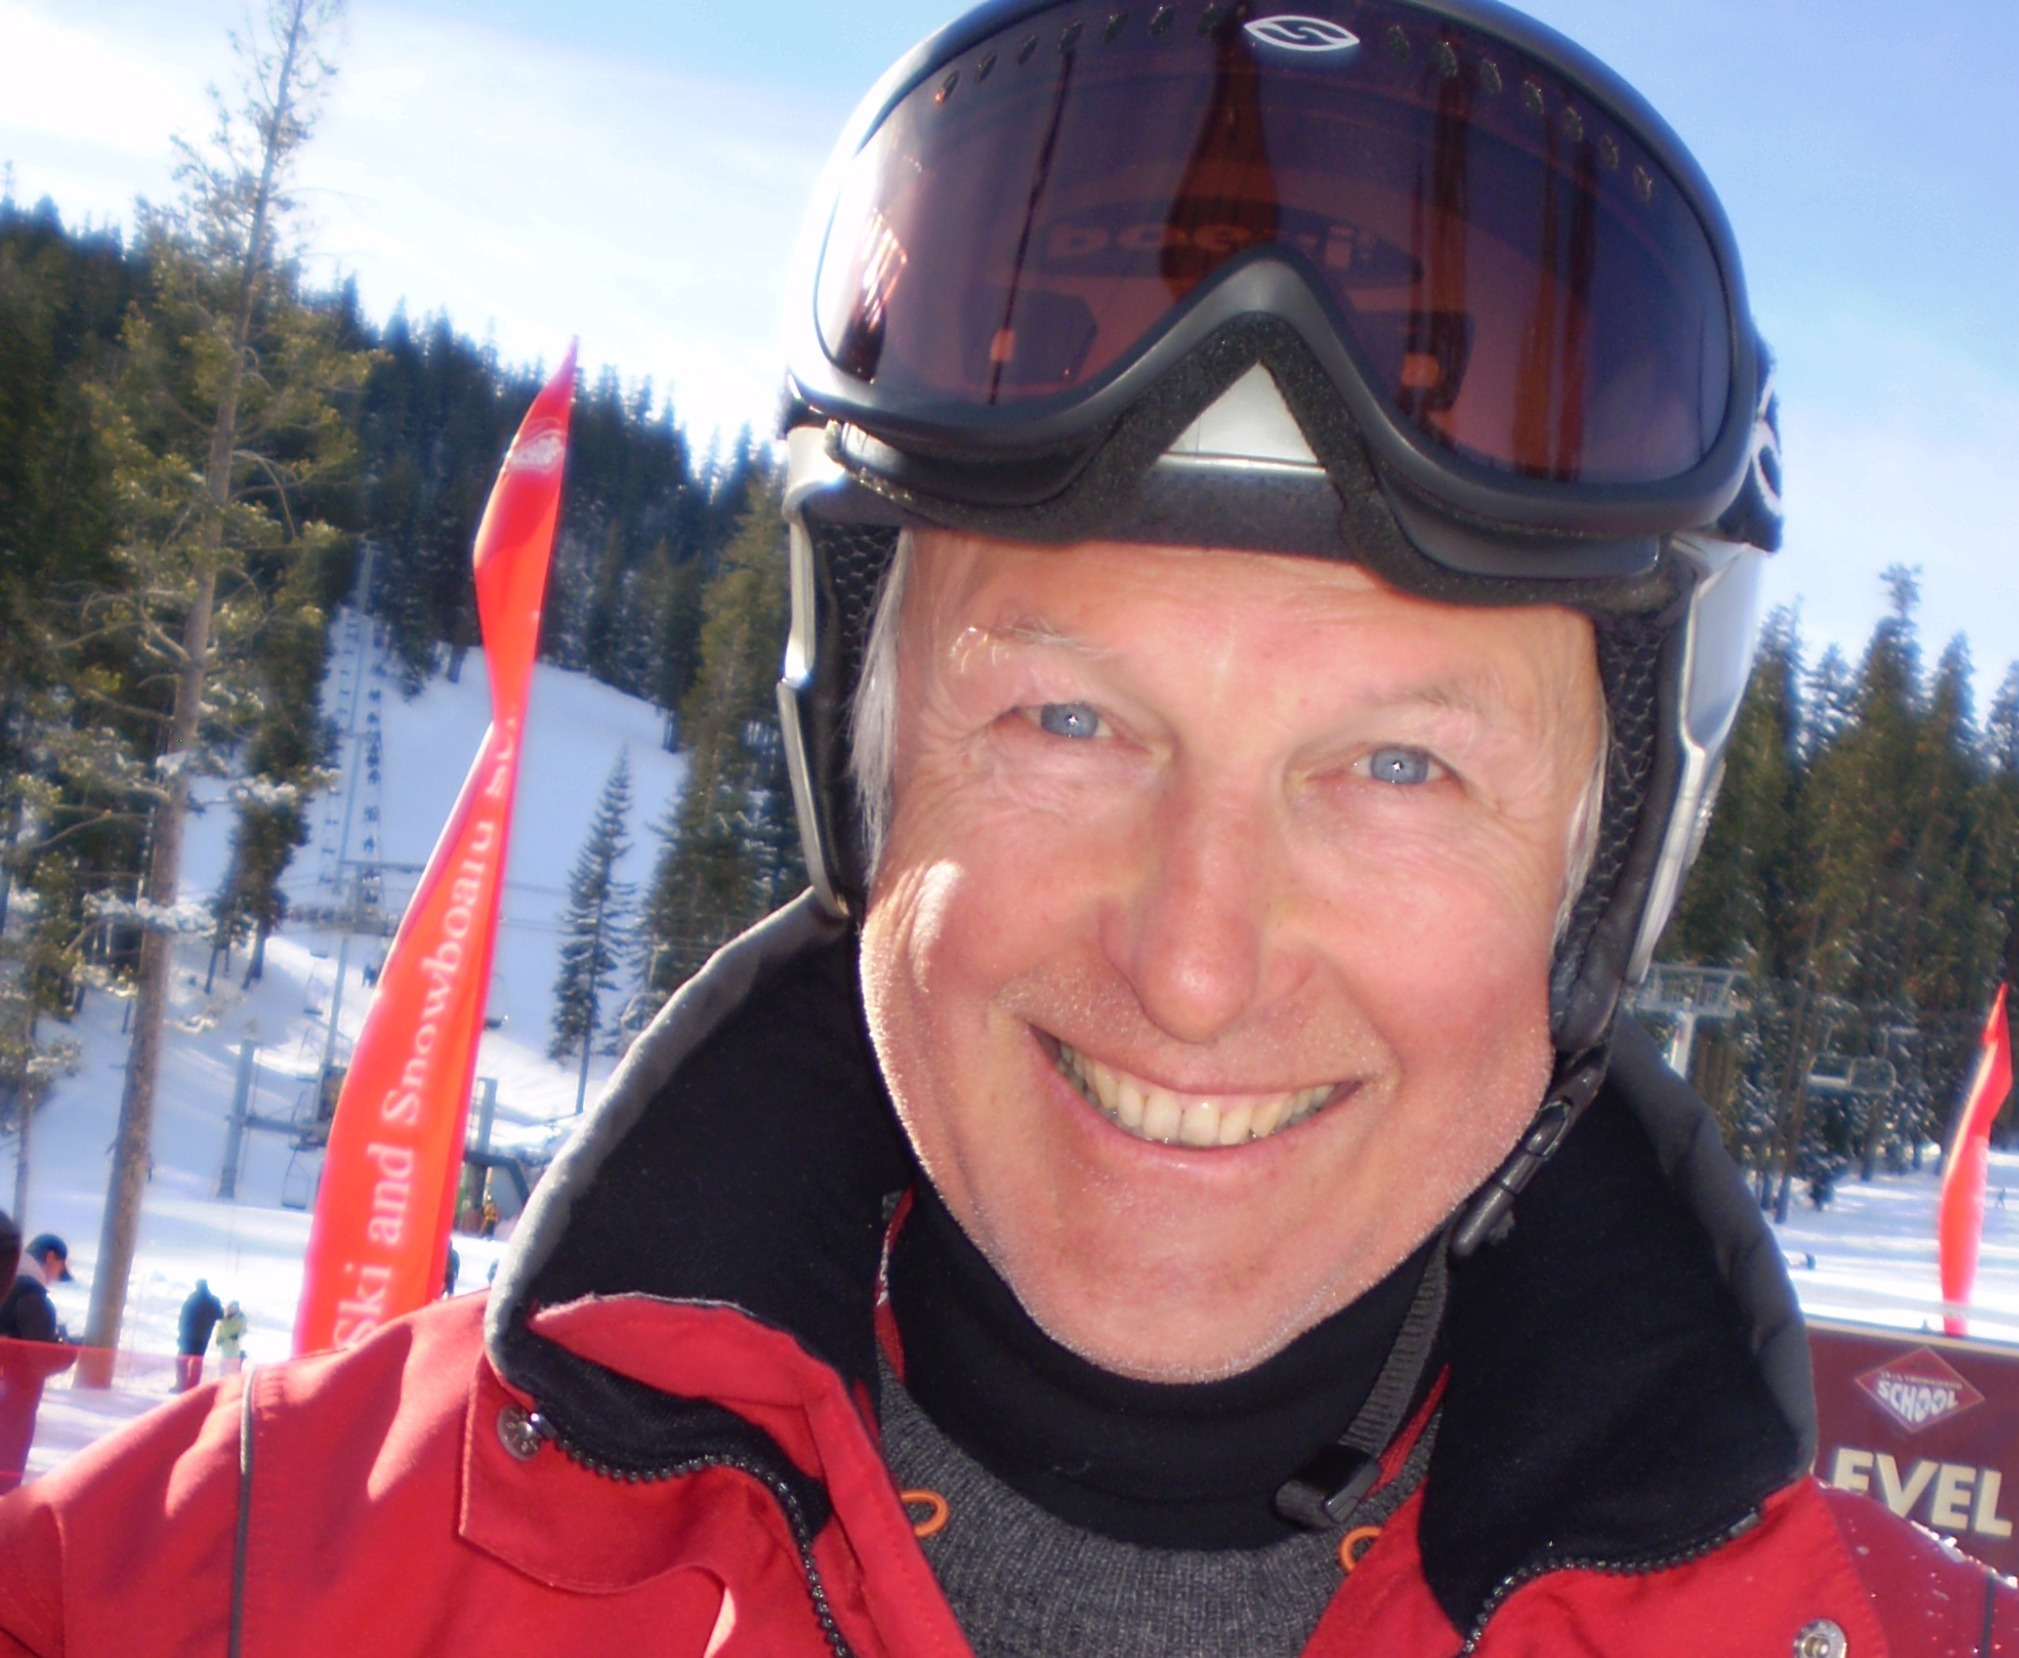 Lewis, private ski instructor for Ben&Joe's, ski school in Klosters and Davos is an Aussi!